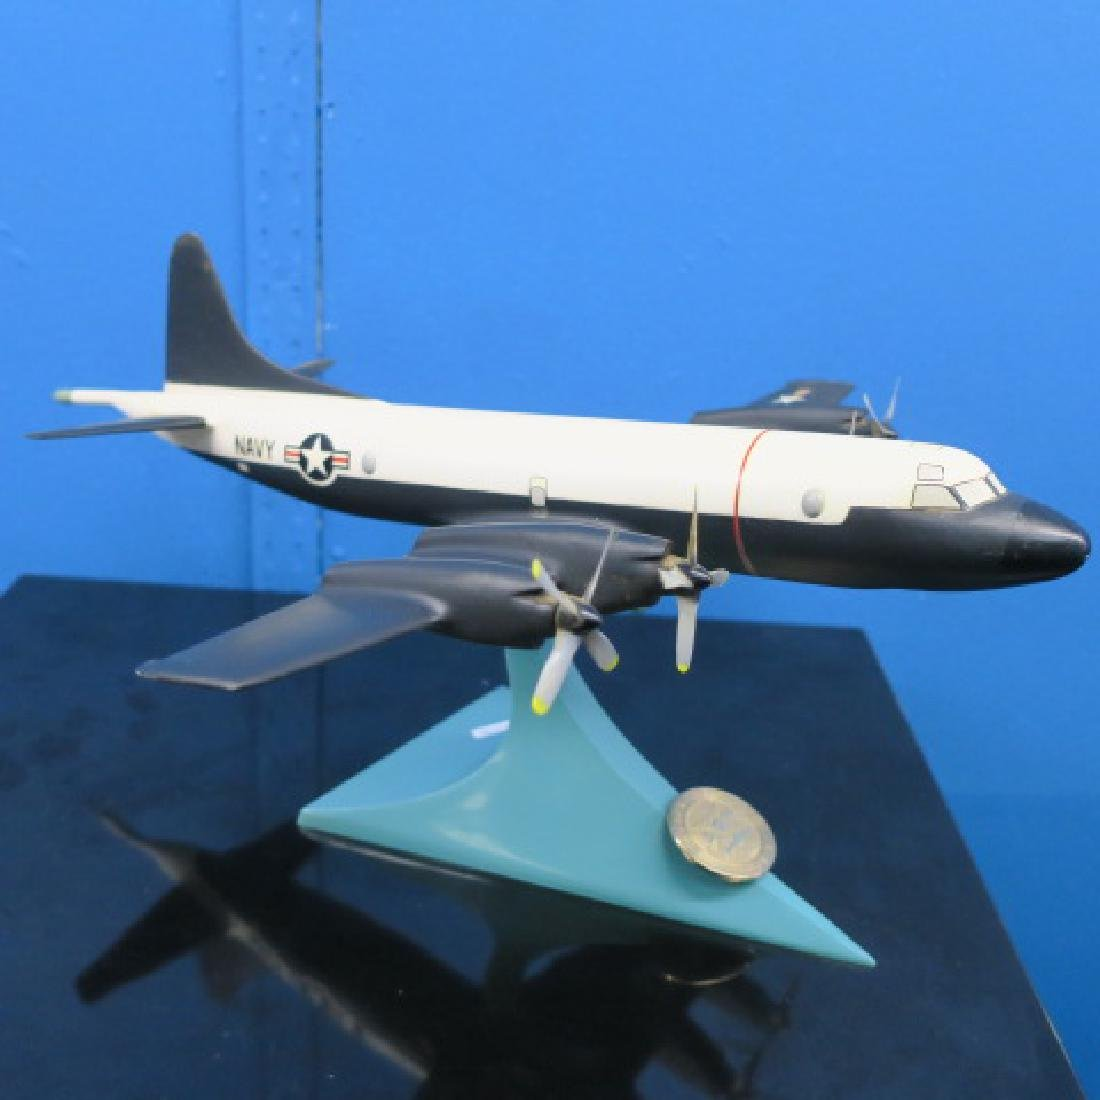 Manufacturers Model of US NAVY P-3 Orion: